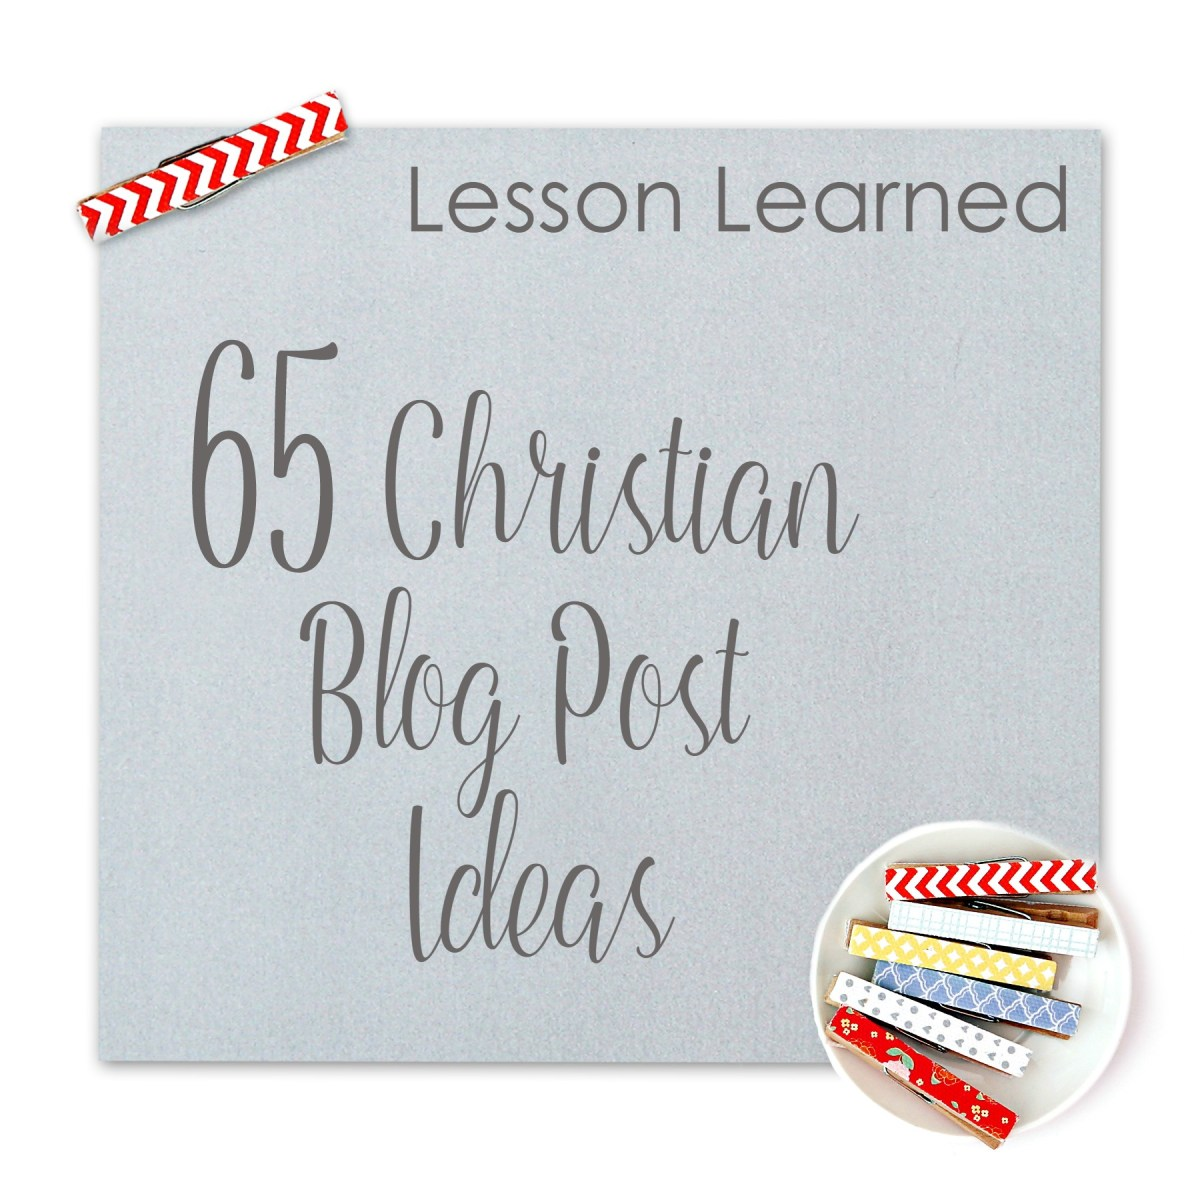 Lesson Learned:  65 Christian Blog Post Ideas